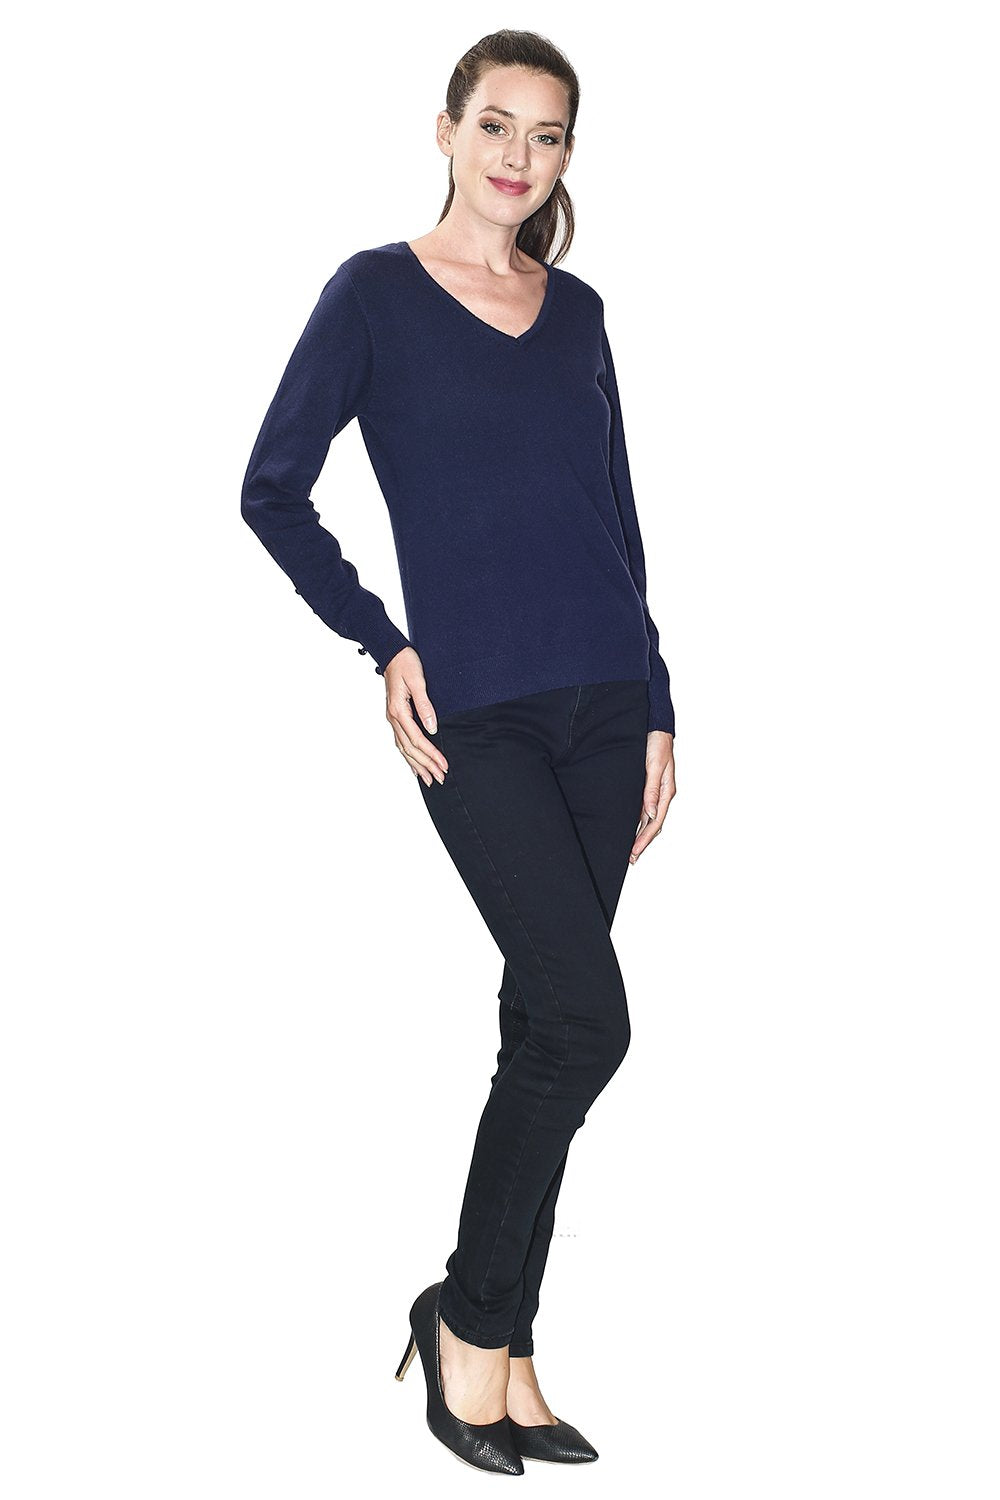 V-NECK SWEATER WITH BUTTONS ON SLEEVES